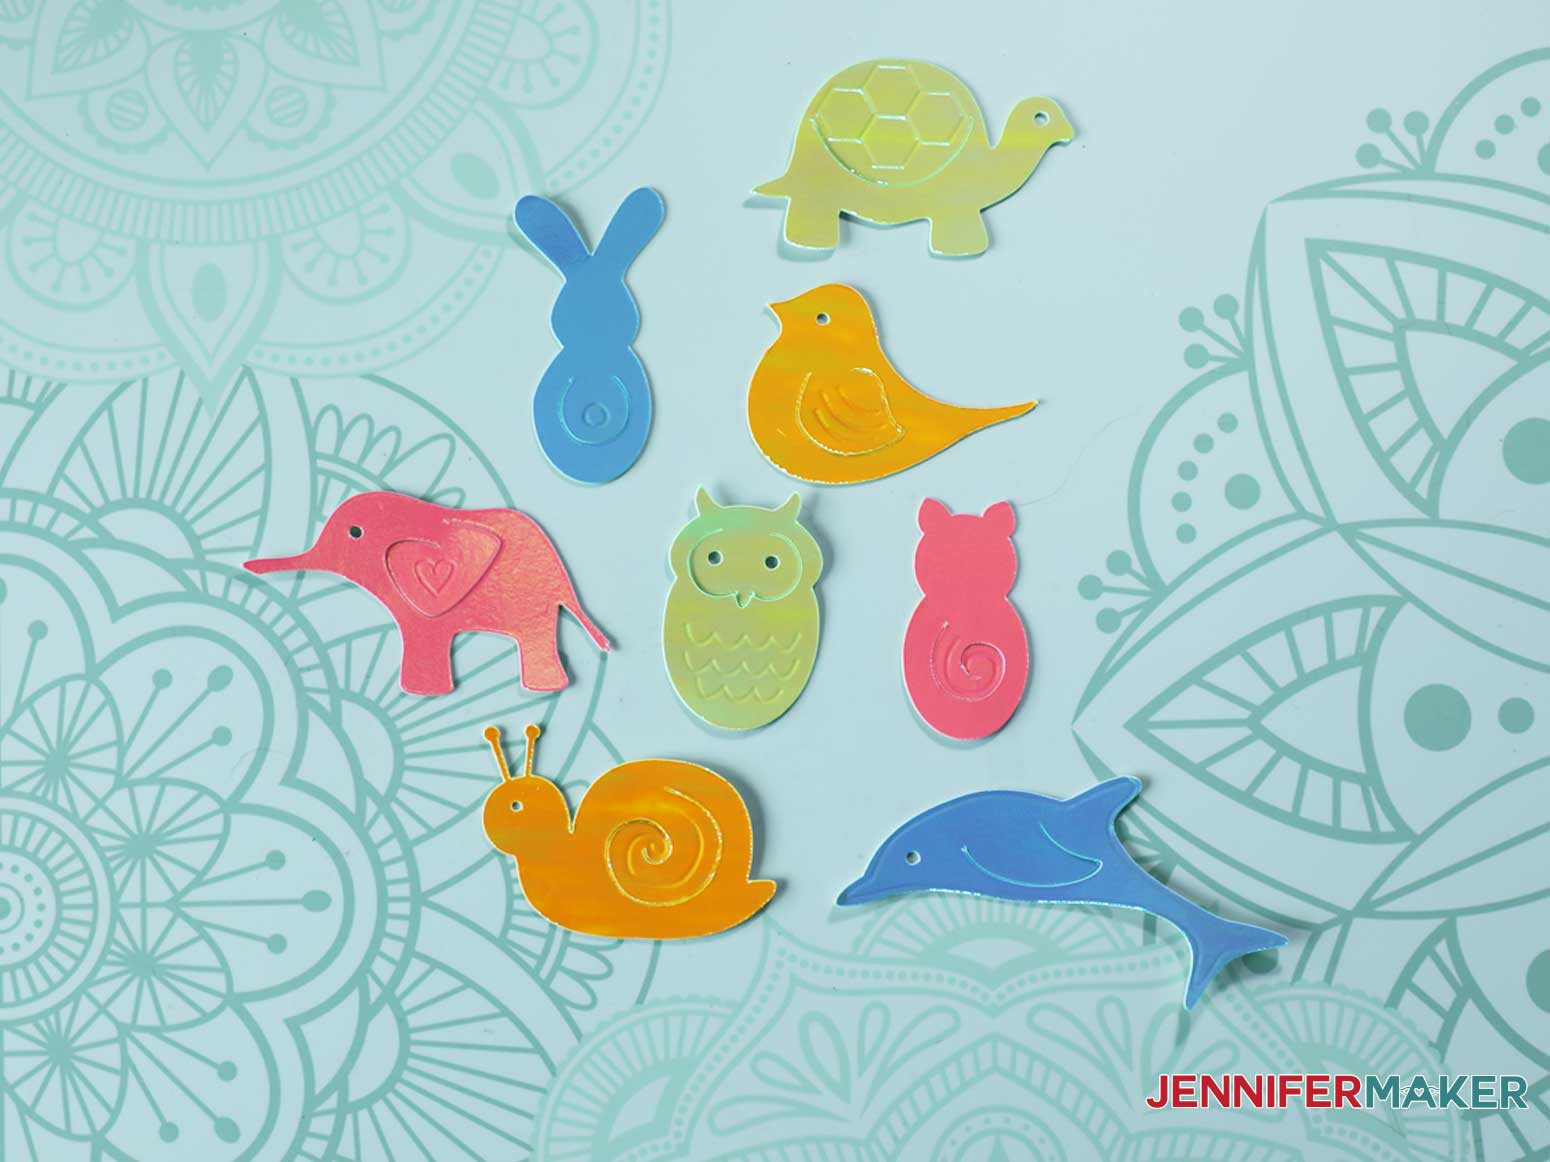 Cute and colorful debossed animal paper clips on a spiral bound book